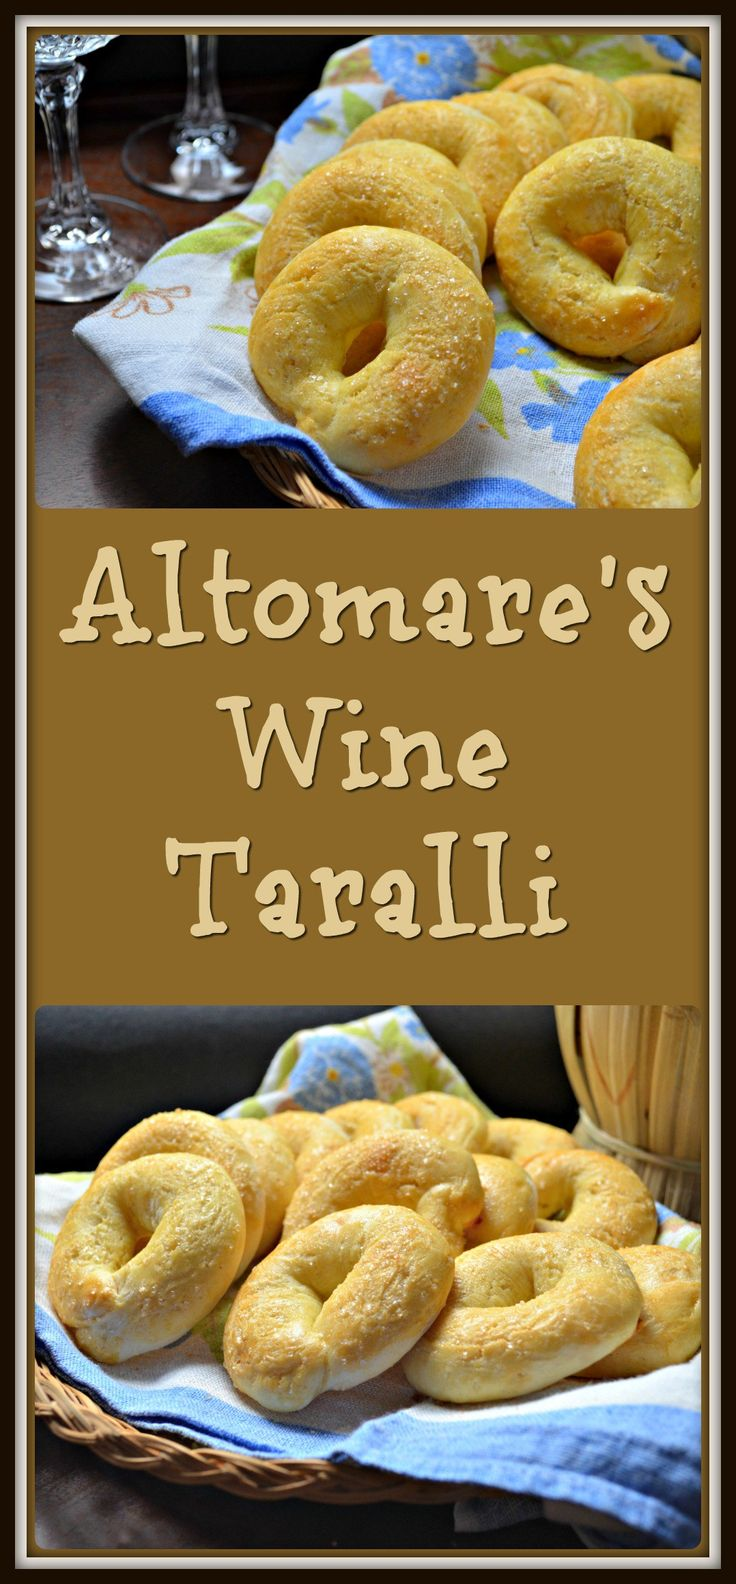 An authentic recipe for this great Italian snack food originating from the region of Naples. Altomare's Wine Taralli is the real thing.